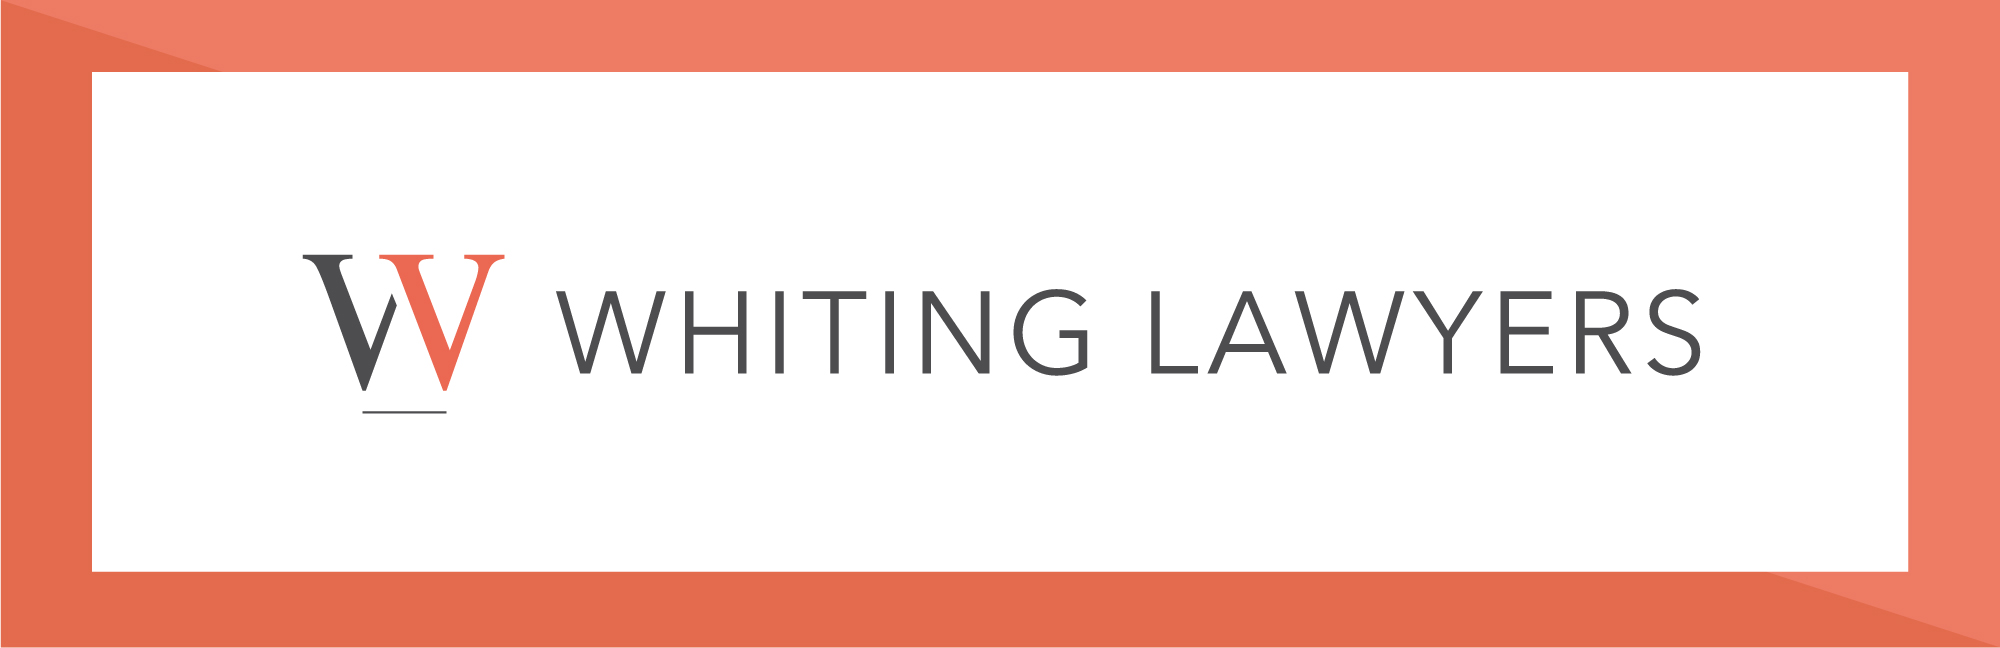 whiting-lawyer-logo-small